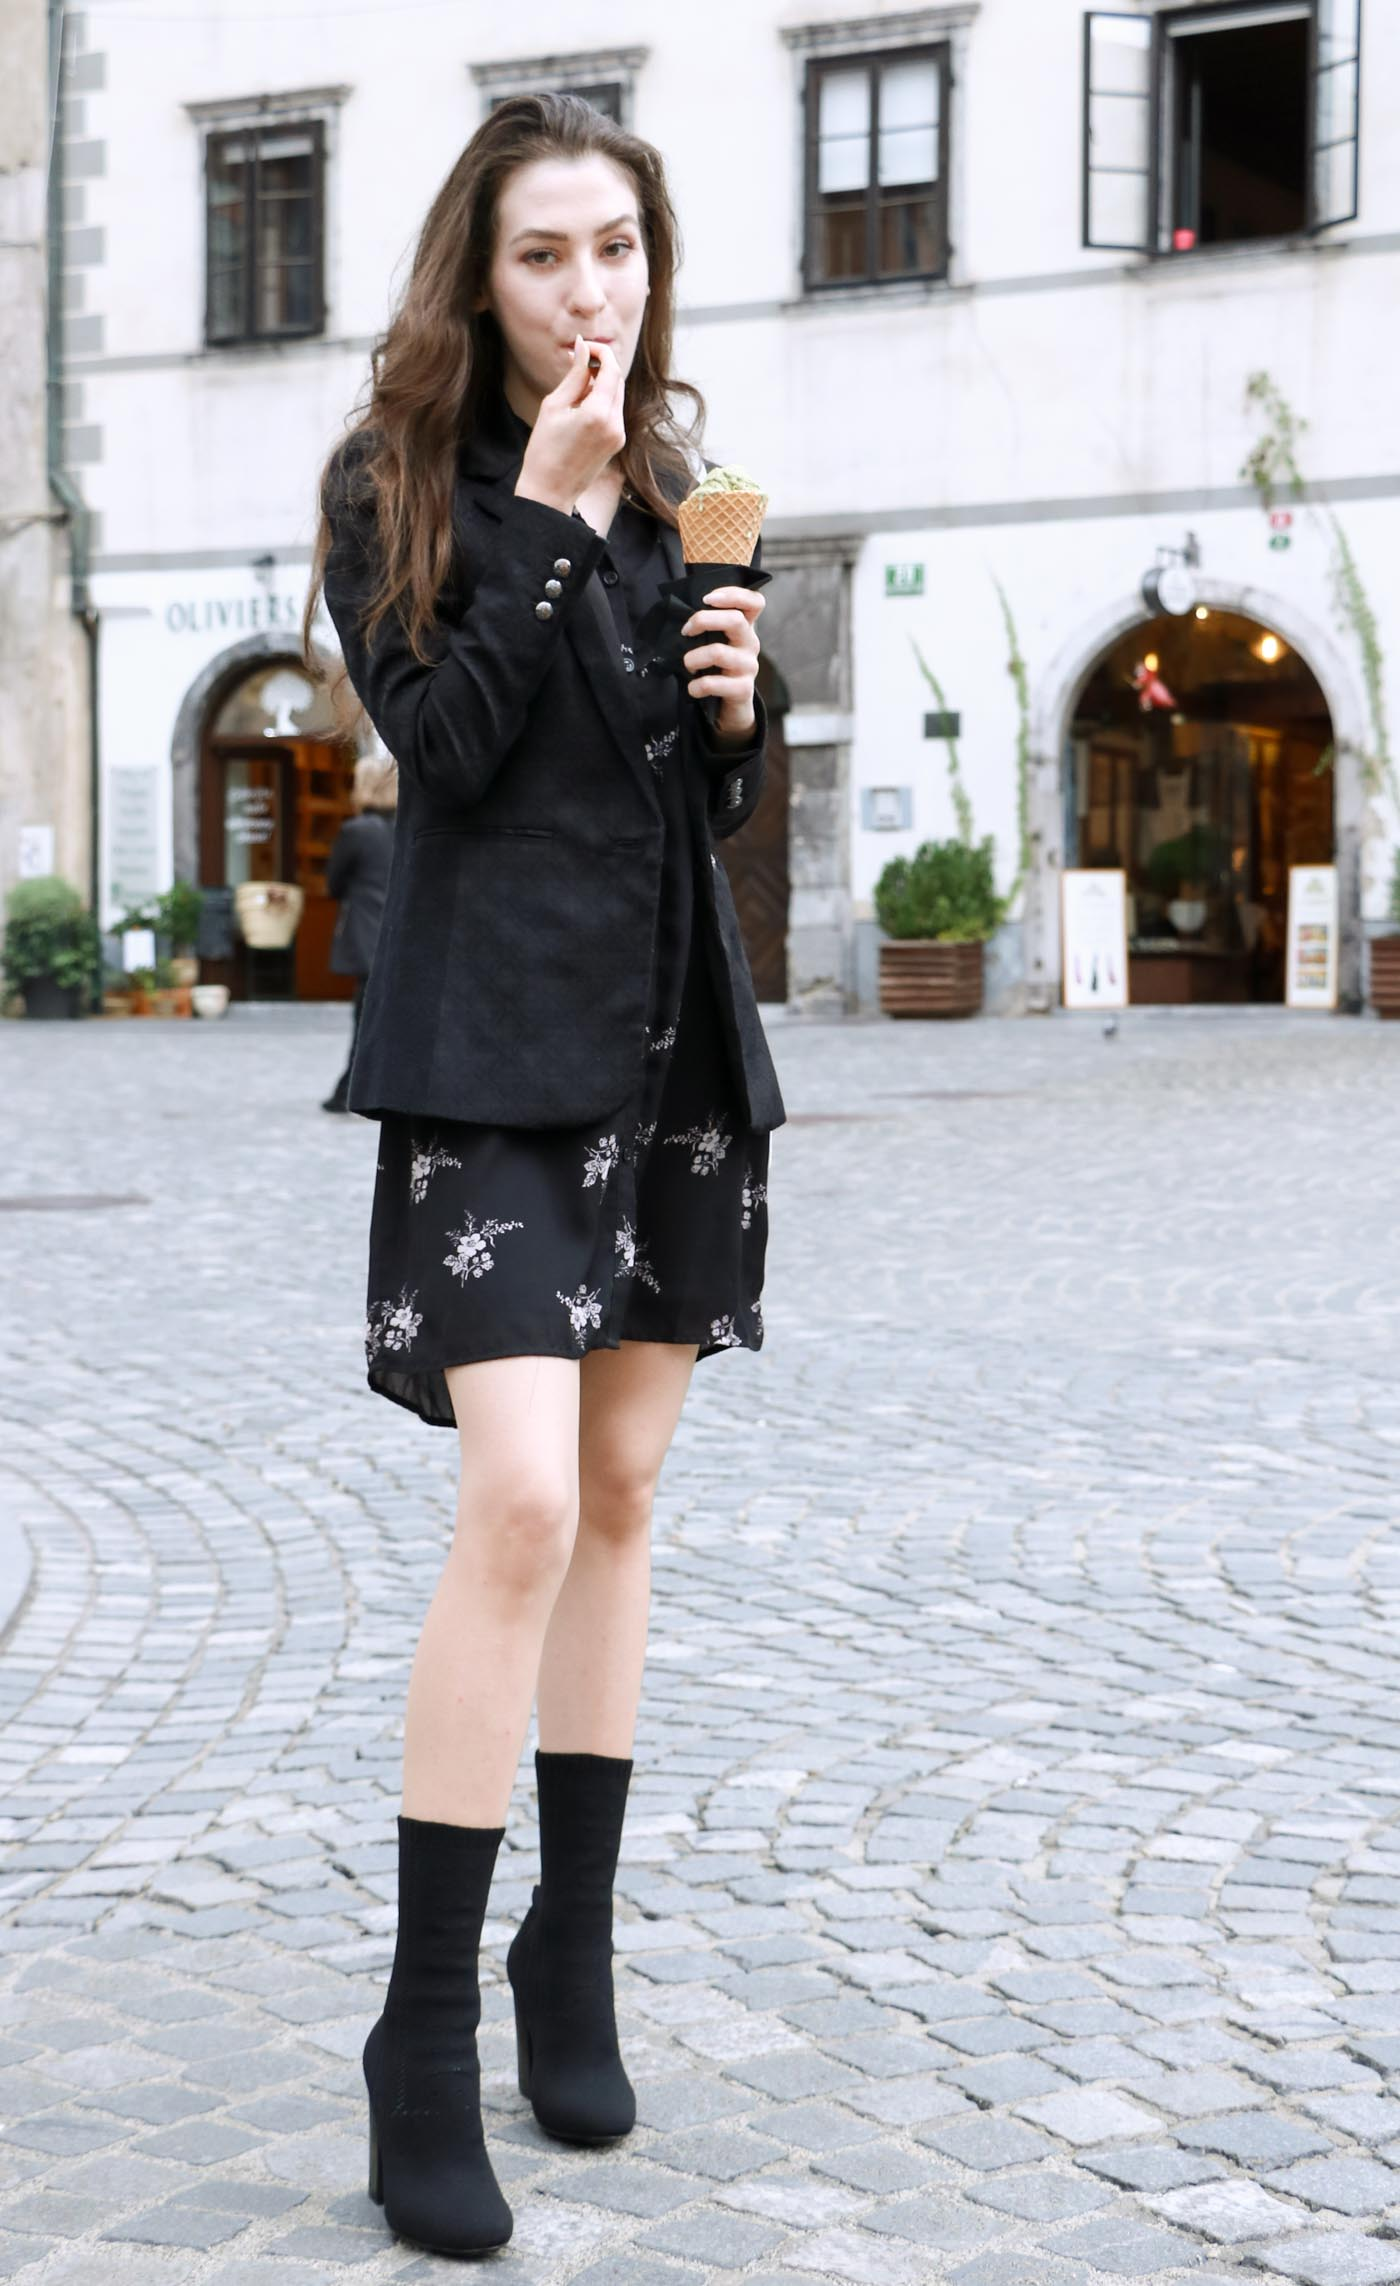 Fashion Blogger Veronika Lipar of Brunette from Wall dressed in decadent floral shirt dress, black jacquard boyfriend blazer, black sock ankle boots, white shoulder bag eating ice cream on the street